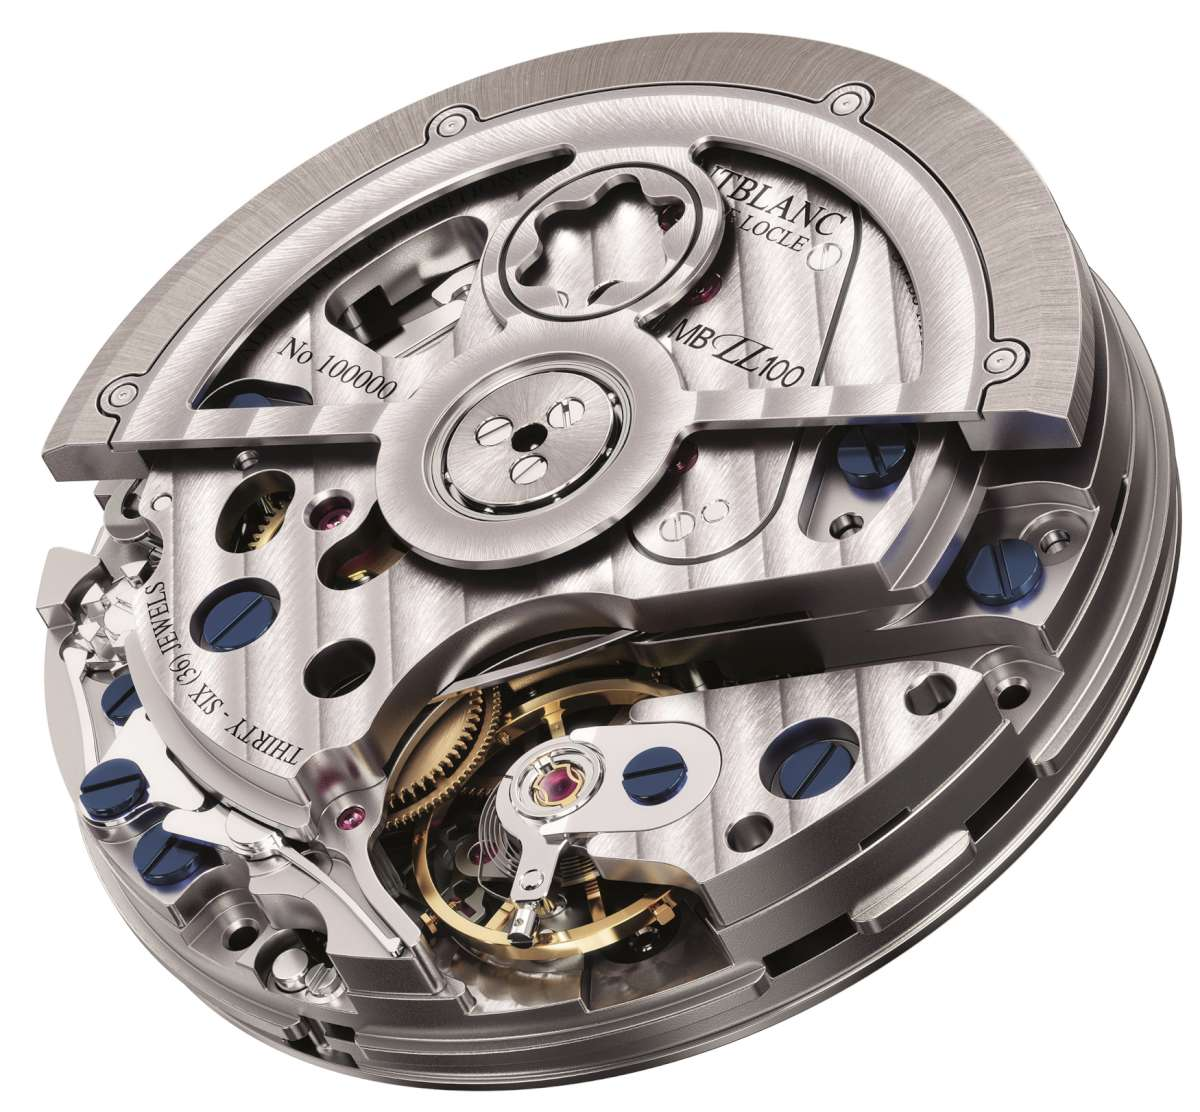 Montblanc MB LL100 movement